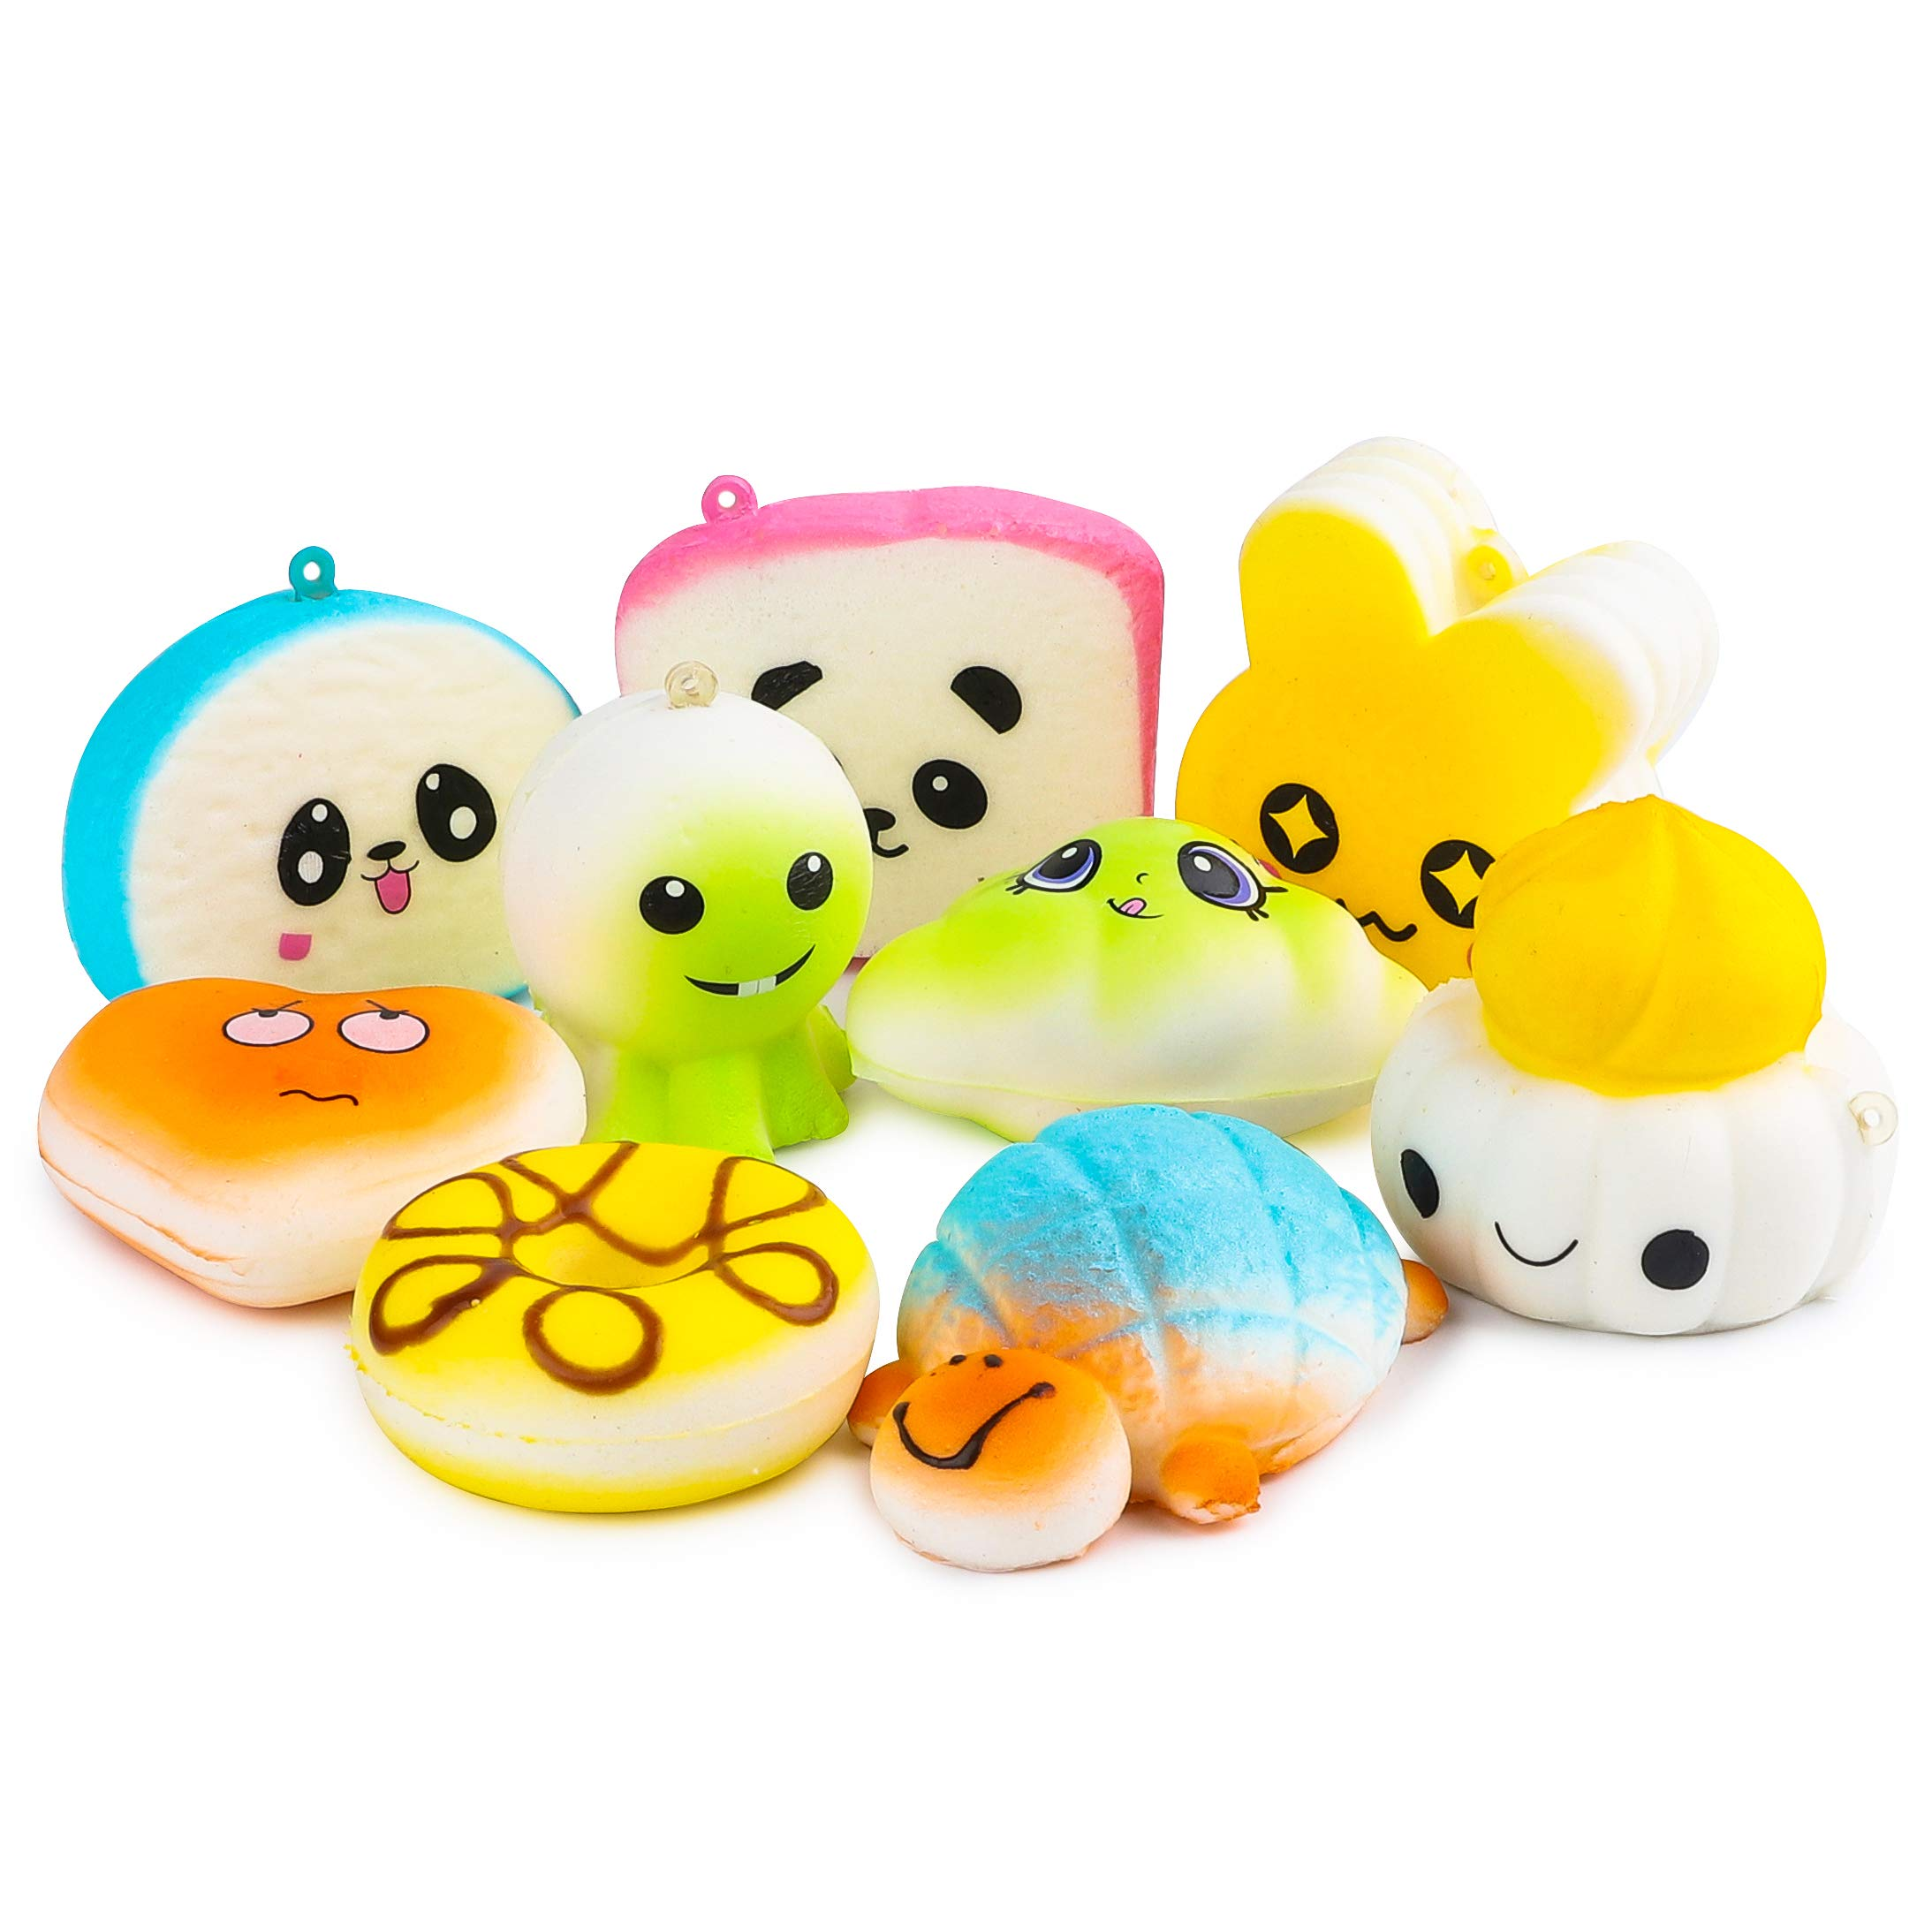 BeYumi Random 42 PCS Mini Squishy Toys 40 Kawaii Food Squishy 2 Animal Squishy Soft Cream Scented Slow Rising Squeeze Toys, Phone Straps for Kids Adults Party Favor by BeYumi (Image #6)